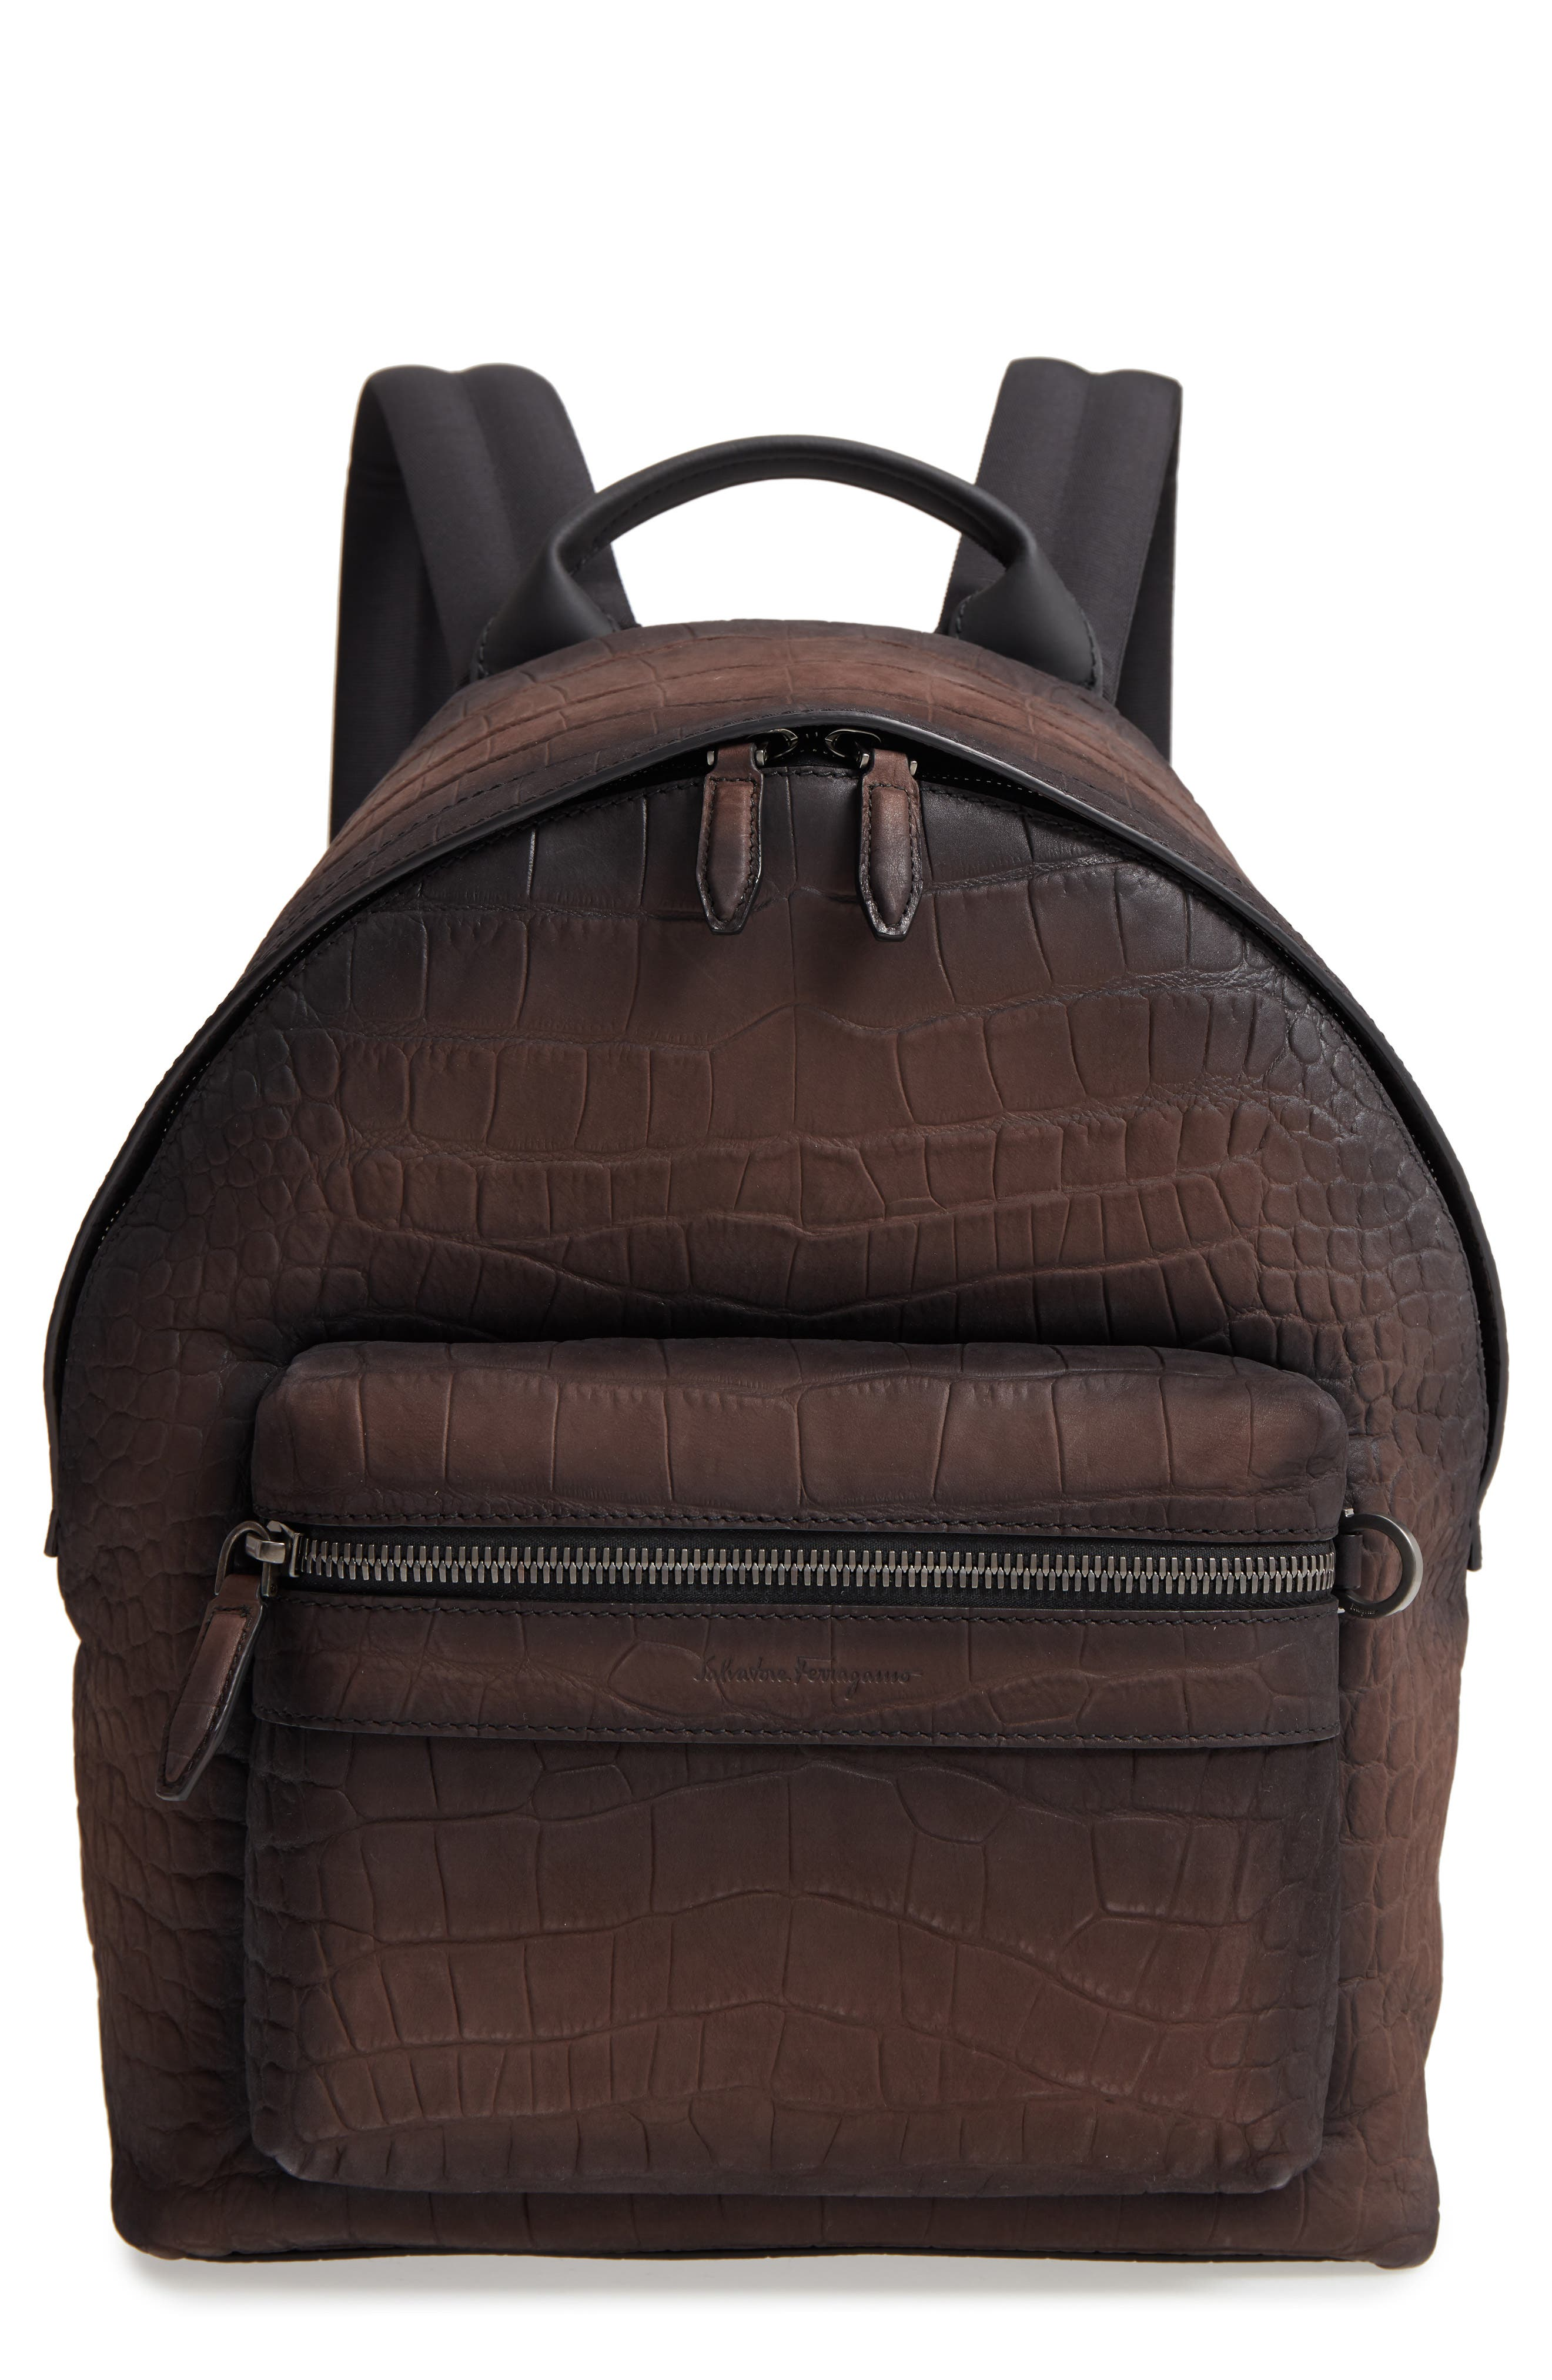 Firenze Leather Backpack,                         Main,                         color, MORO